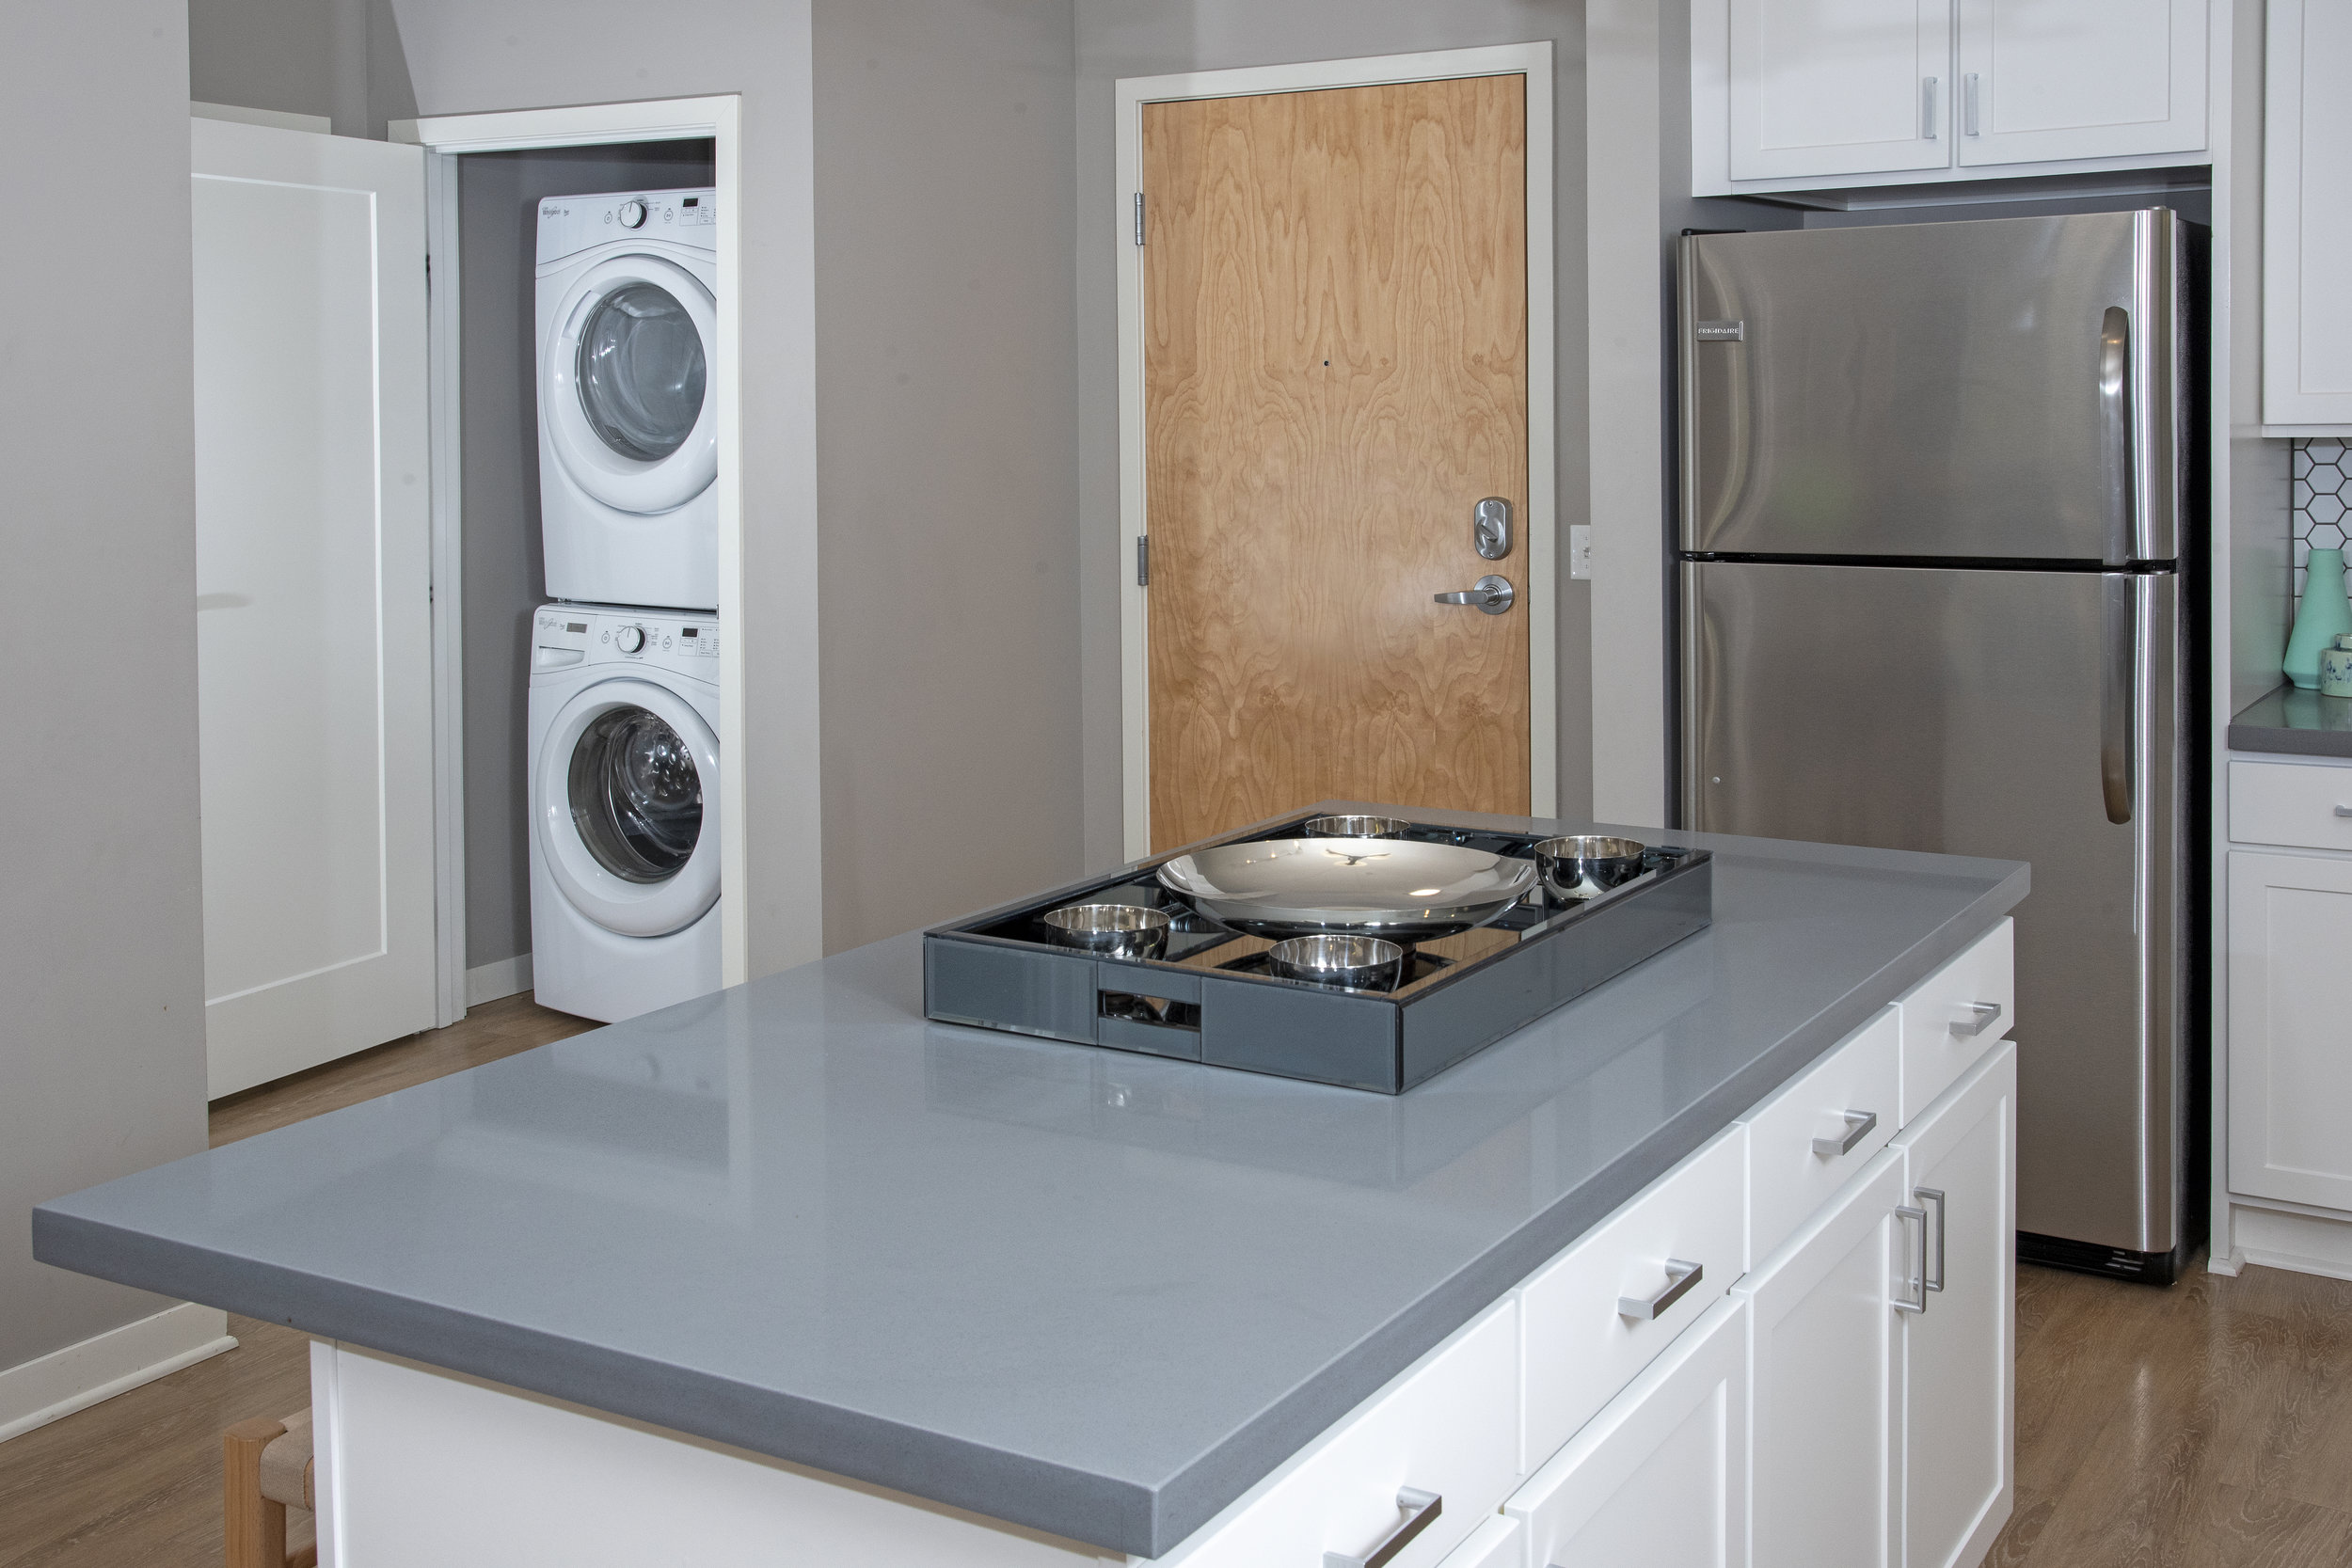 05-In-Unit Stacked Washer & Dryers.jpg